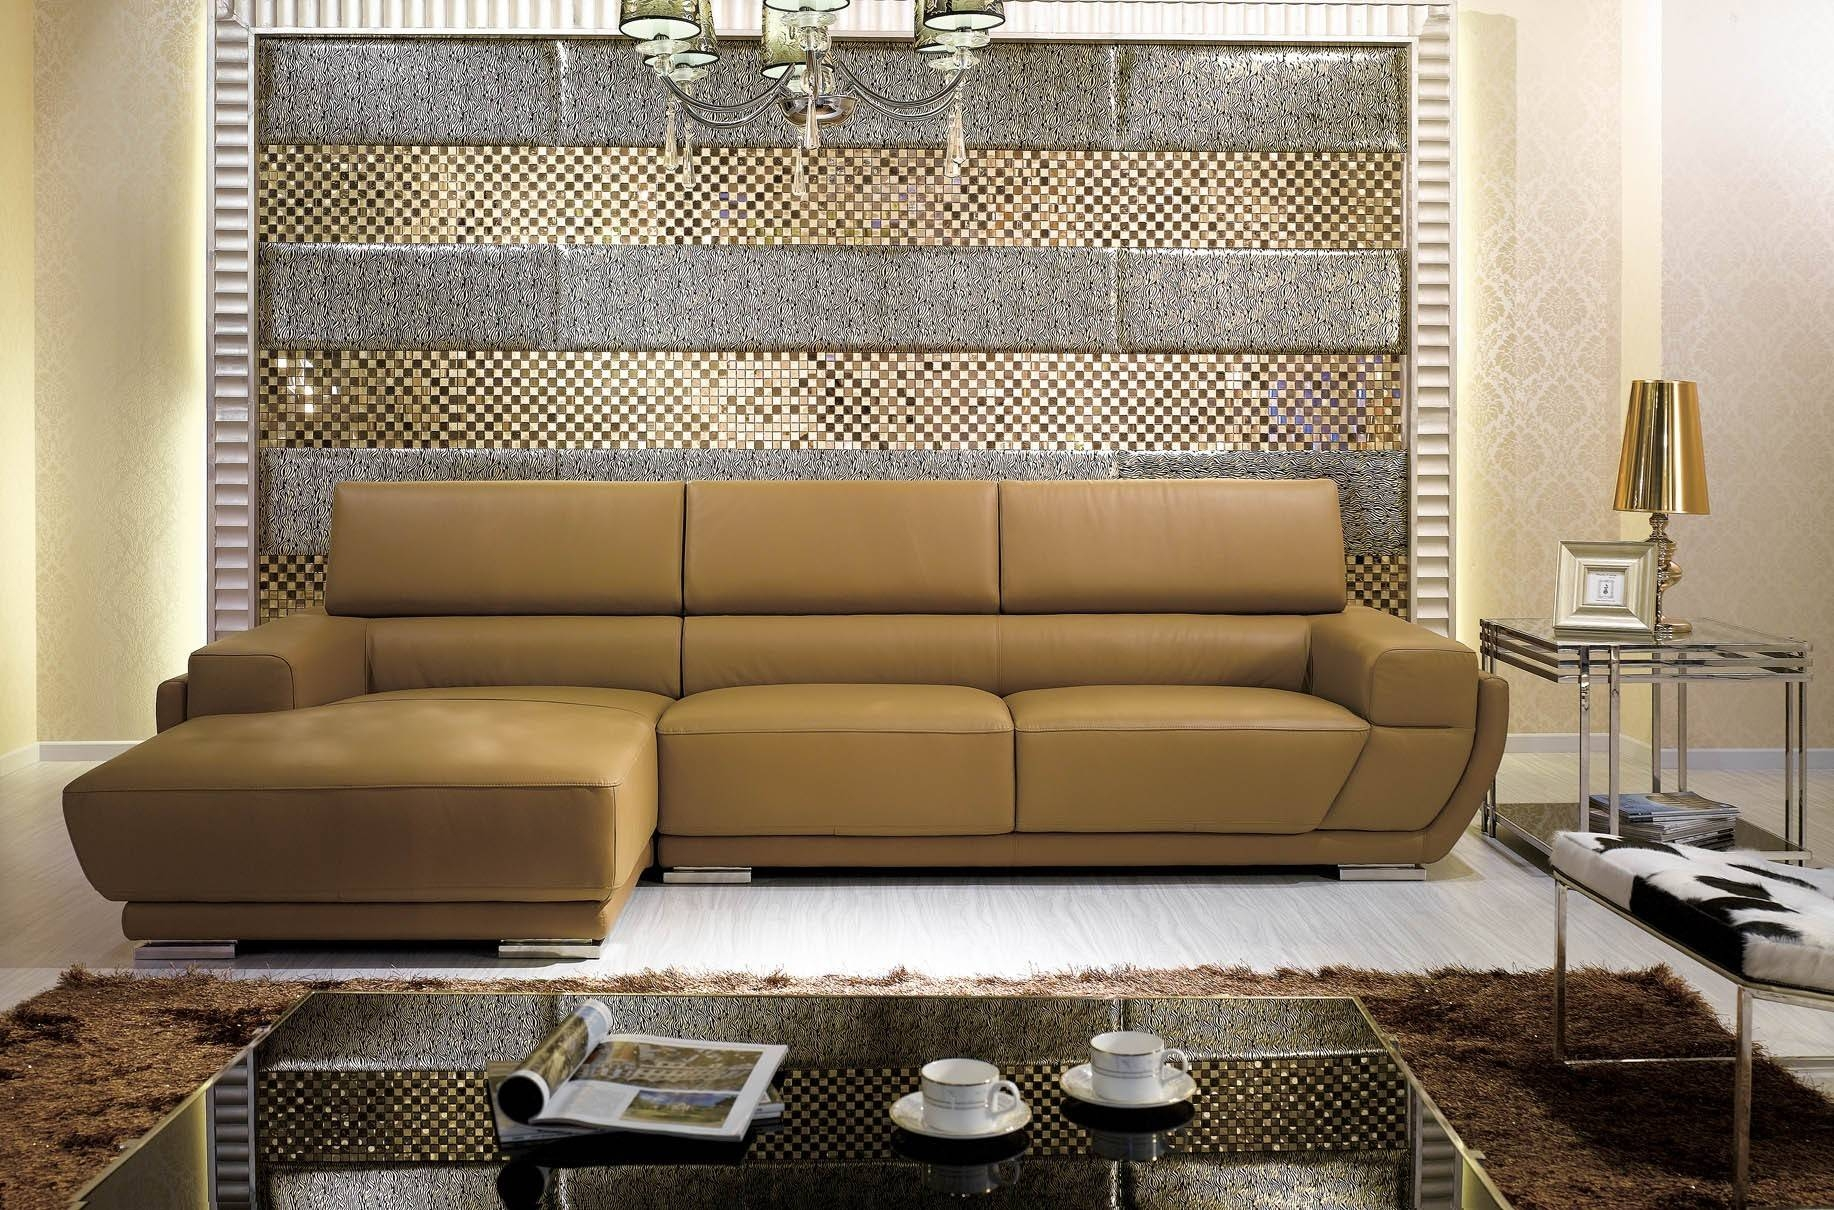 K8300 Modern Camel Italian Leather Sectional Sofa for Camel Colored Sectional Sofa (Image 23 of 30)